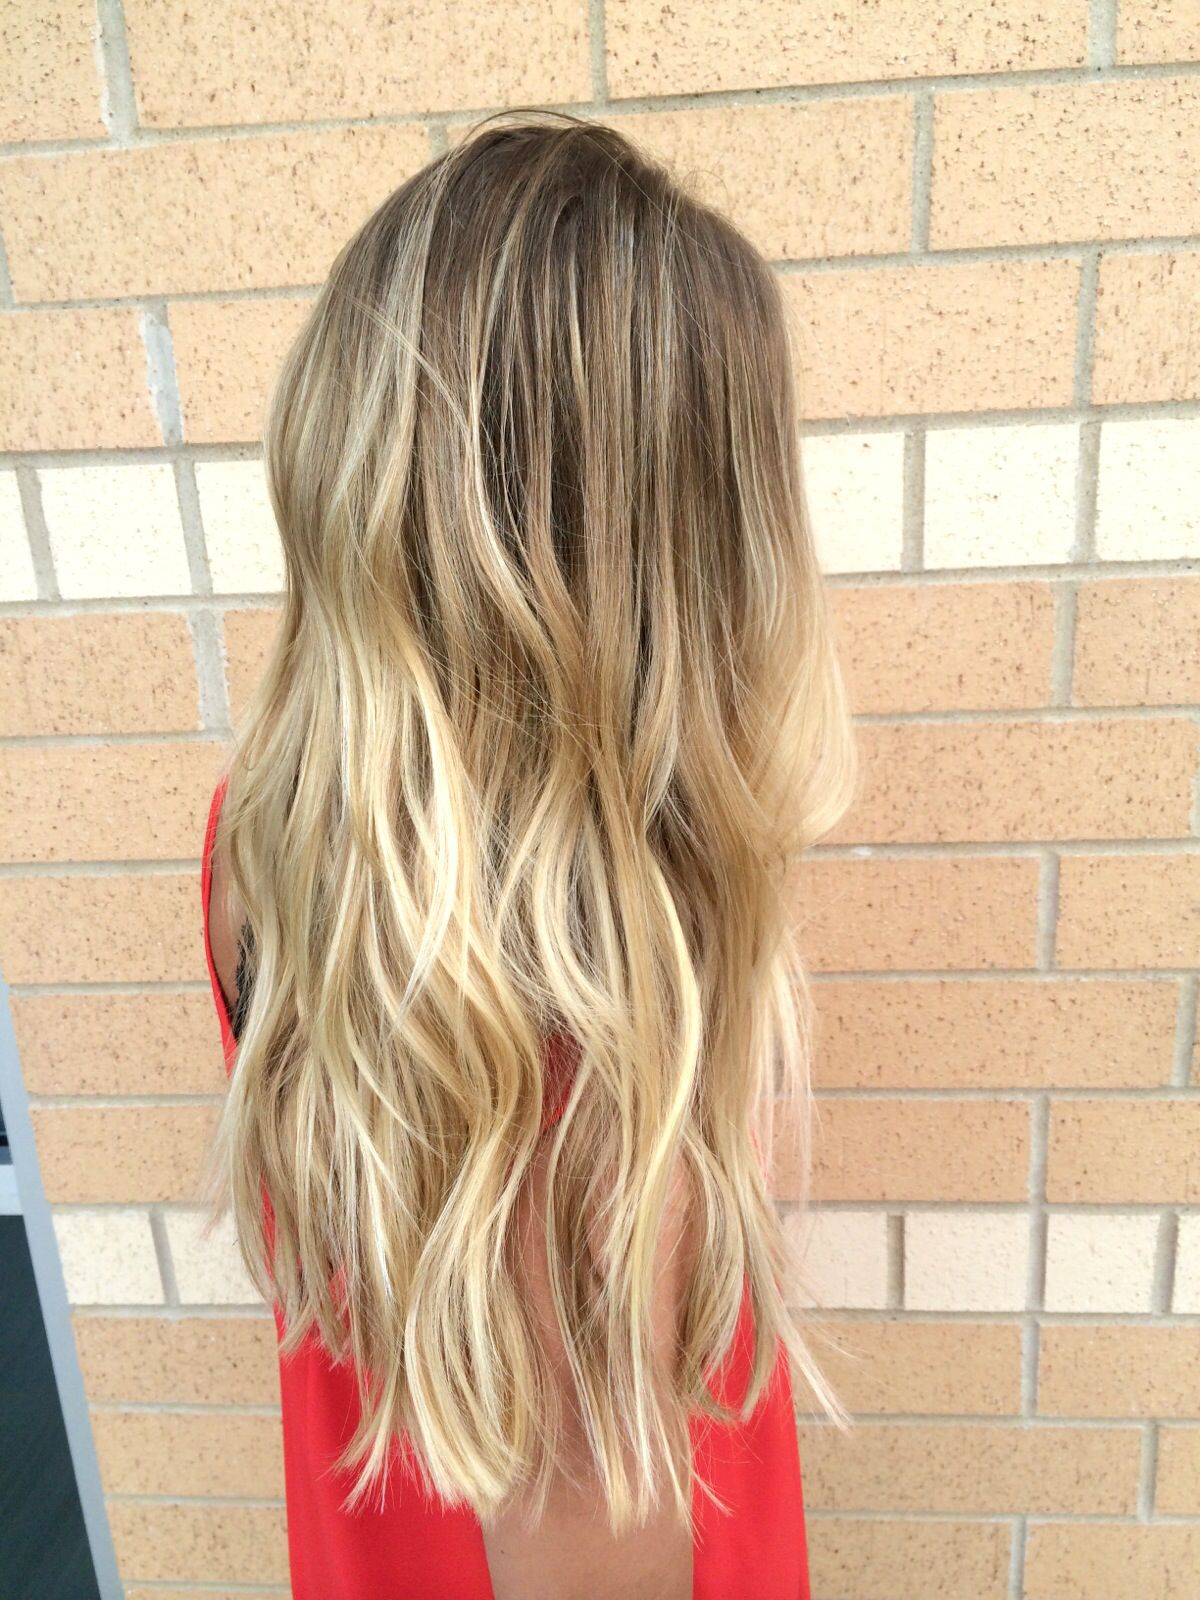 Low Maintenance Blonde Hair With Balayage D Highlights Instagram